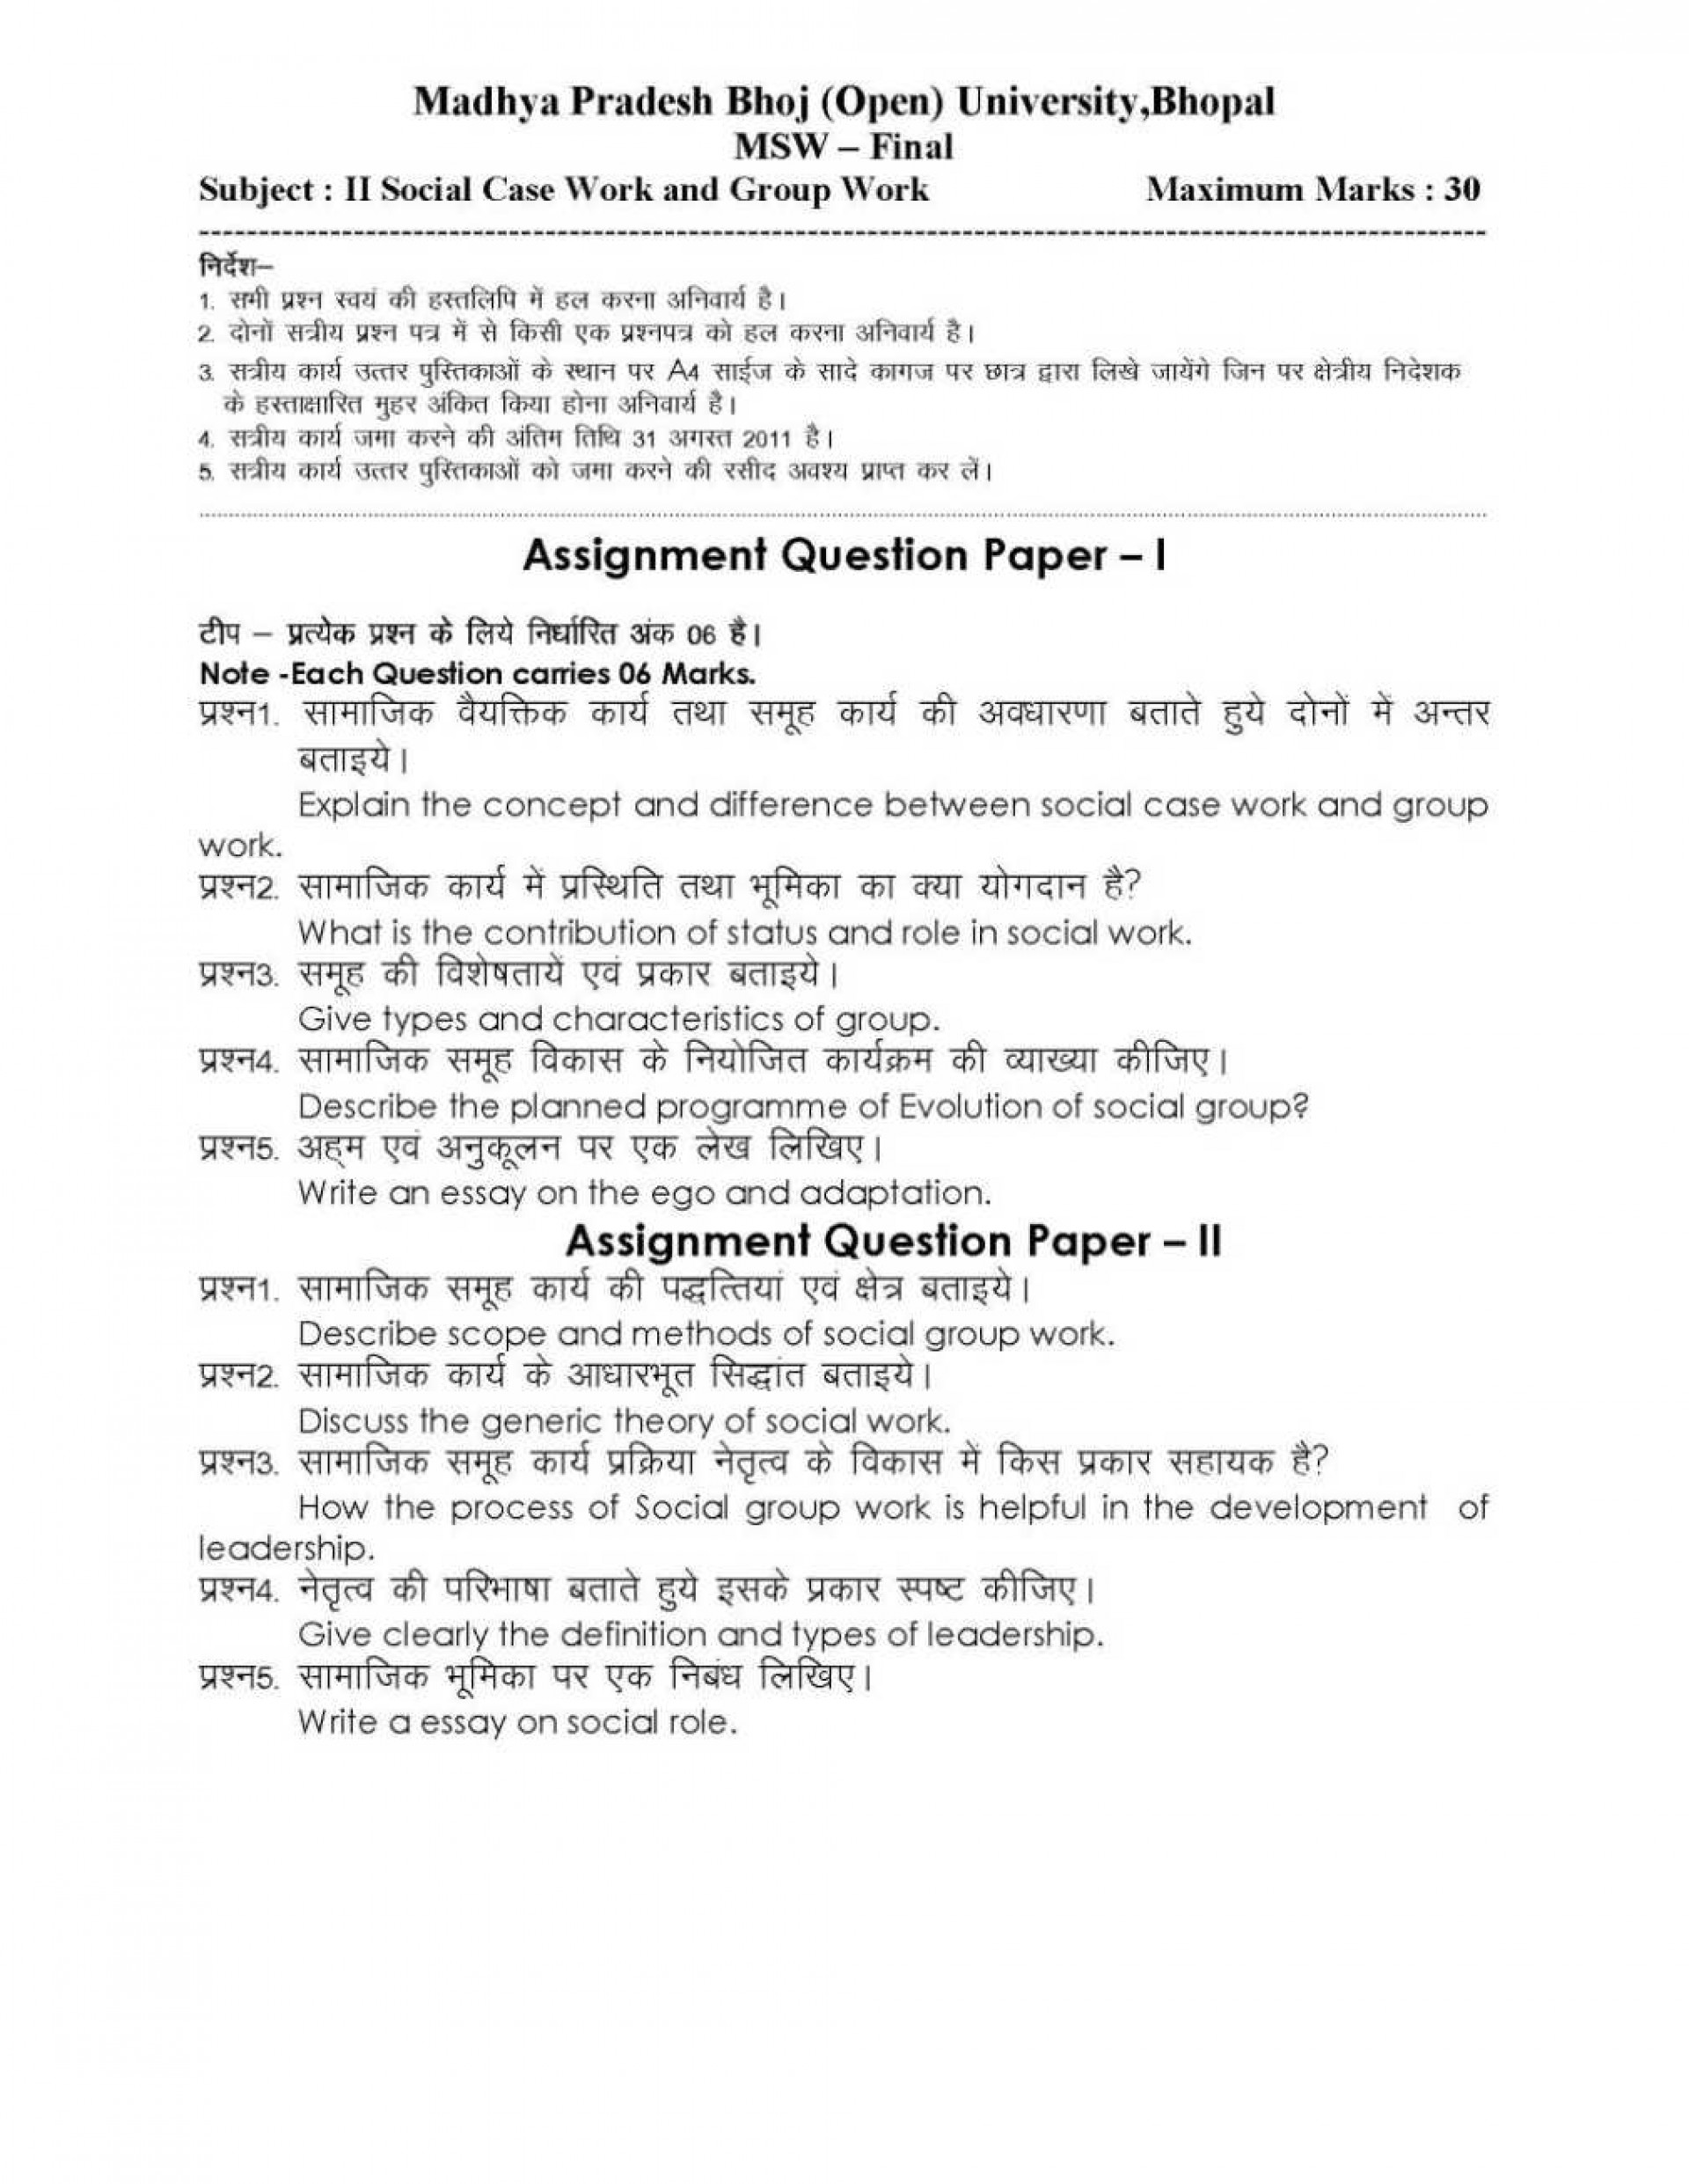 011 Bhoj University Bhopal Msw Leadership Experience Essay Dreaded For Scholarship Describe Your Examples 1920